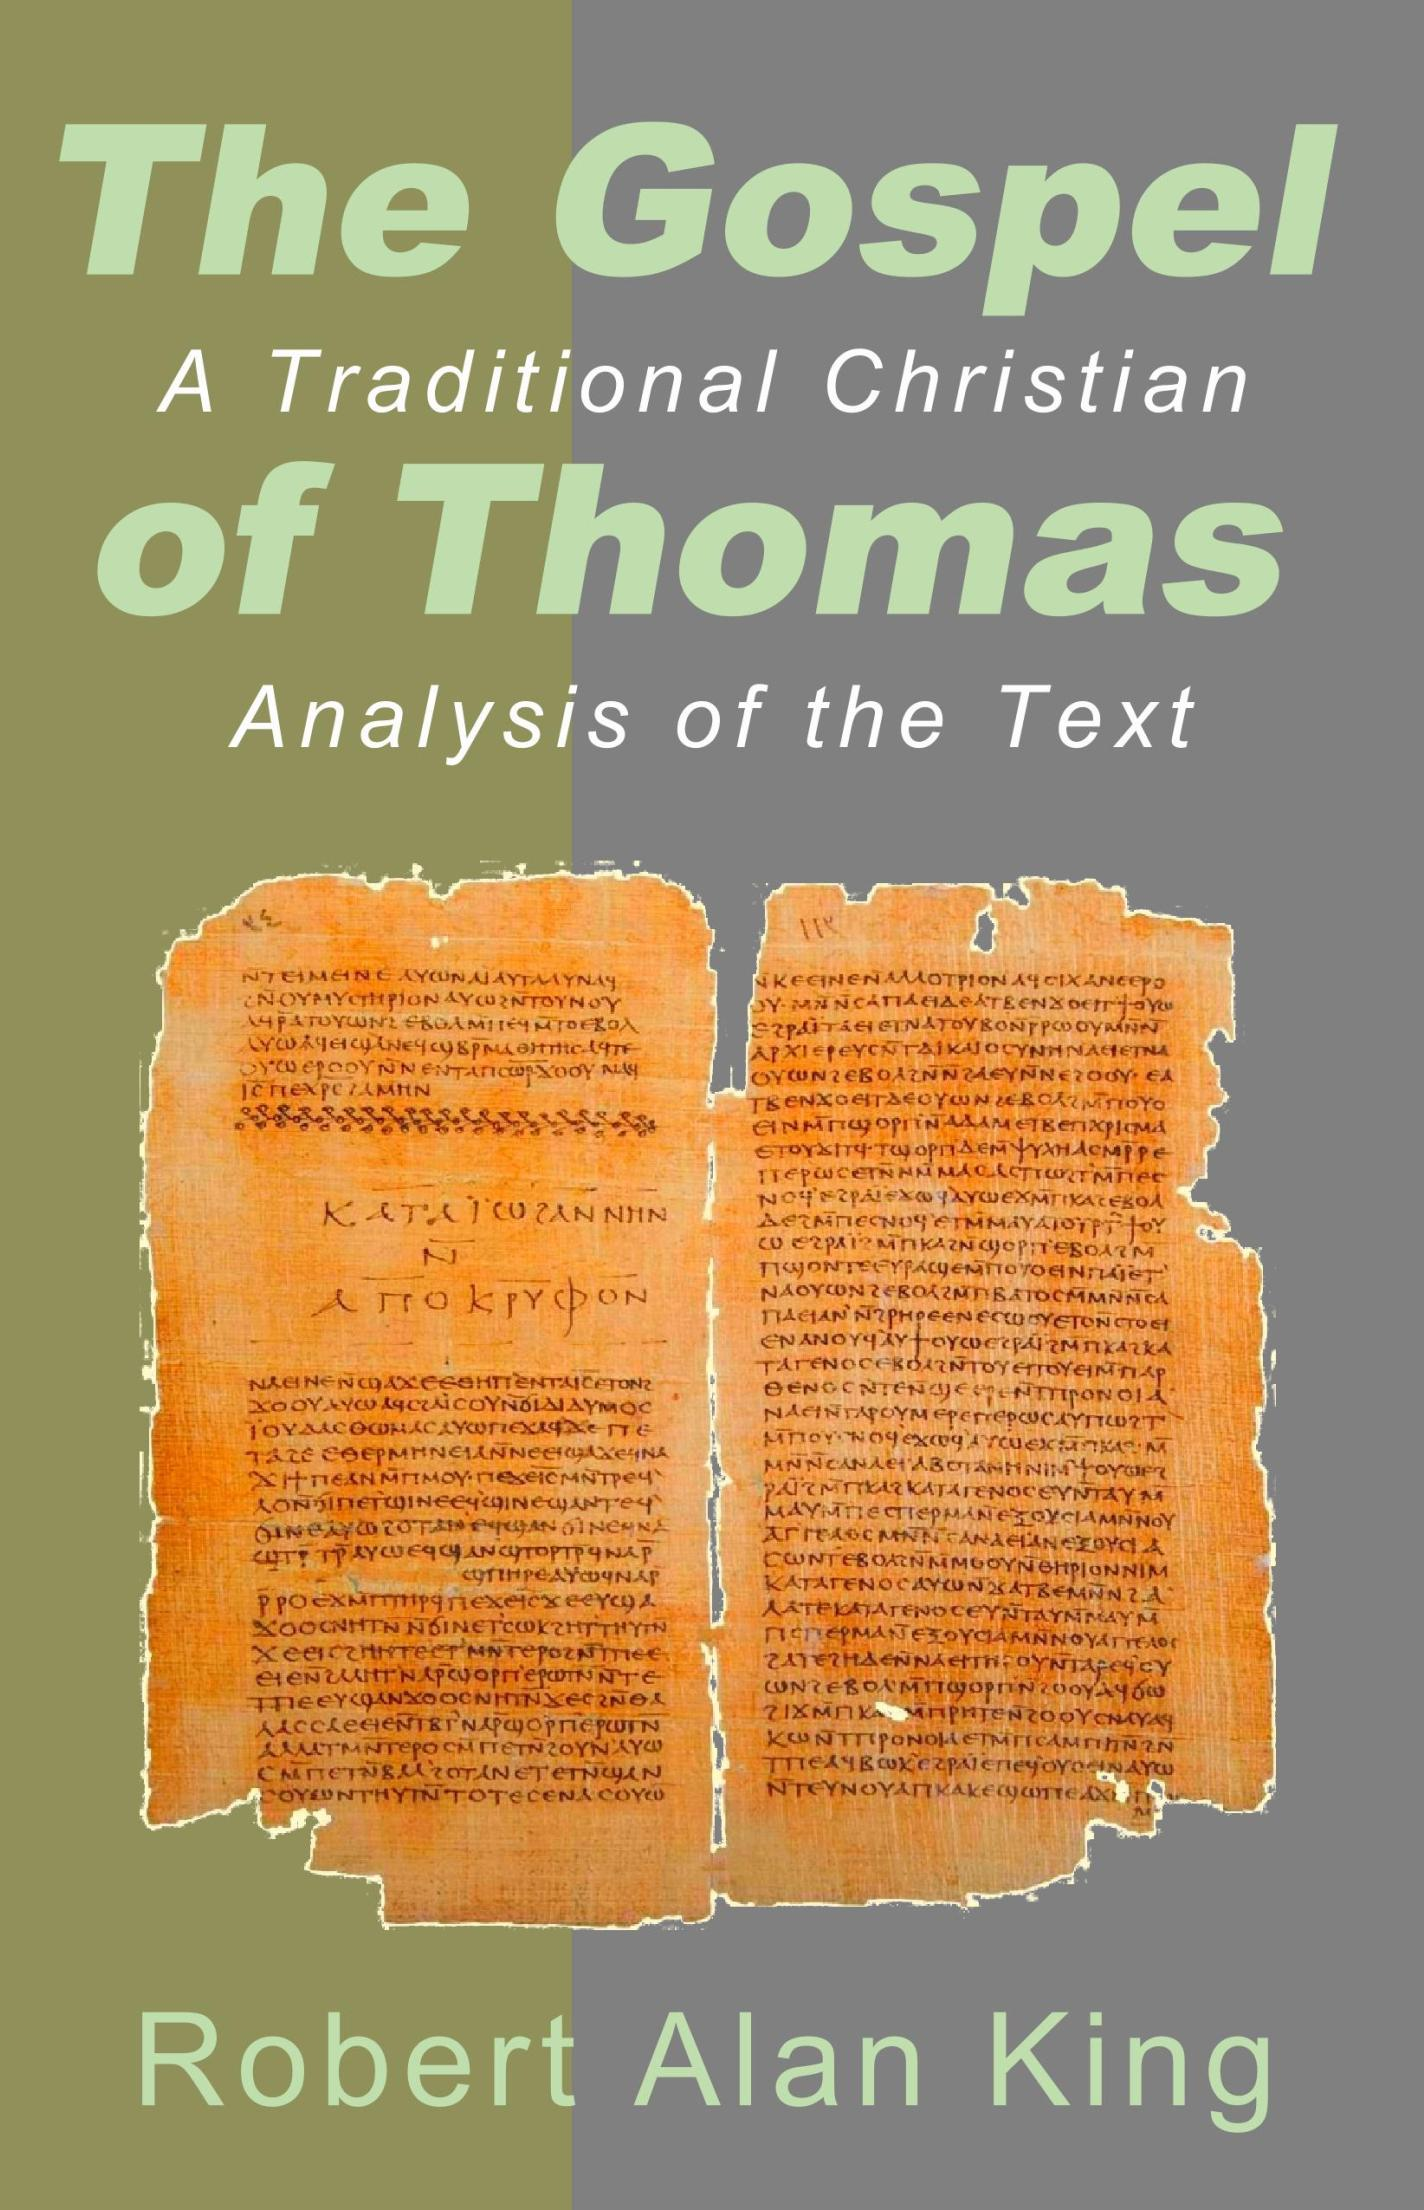 a book analysis of is jesus July 29, 2012 analysis ronald h nash begins his book responding the position of pluralism in regards to the exclusivity of jesus christ, mainly directed at john hick, who was a leading proponent of pluralism until his death earlier this year.